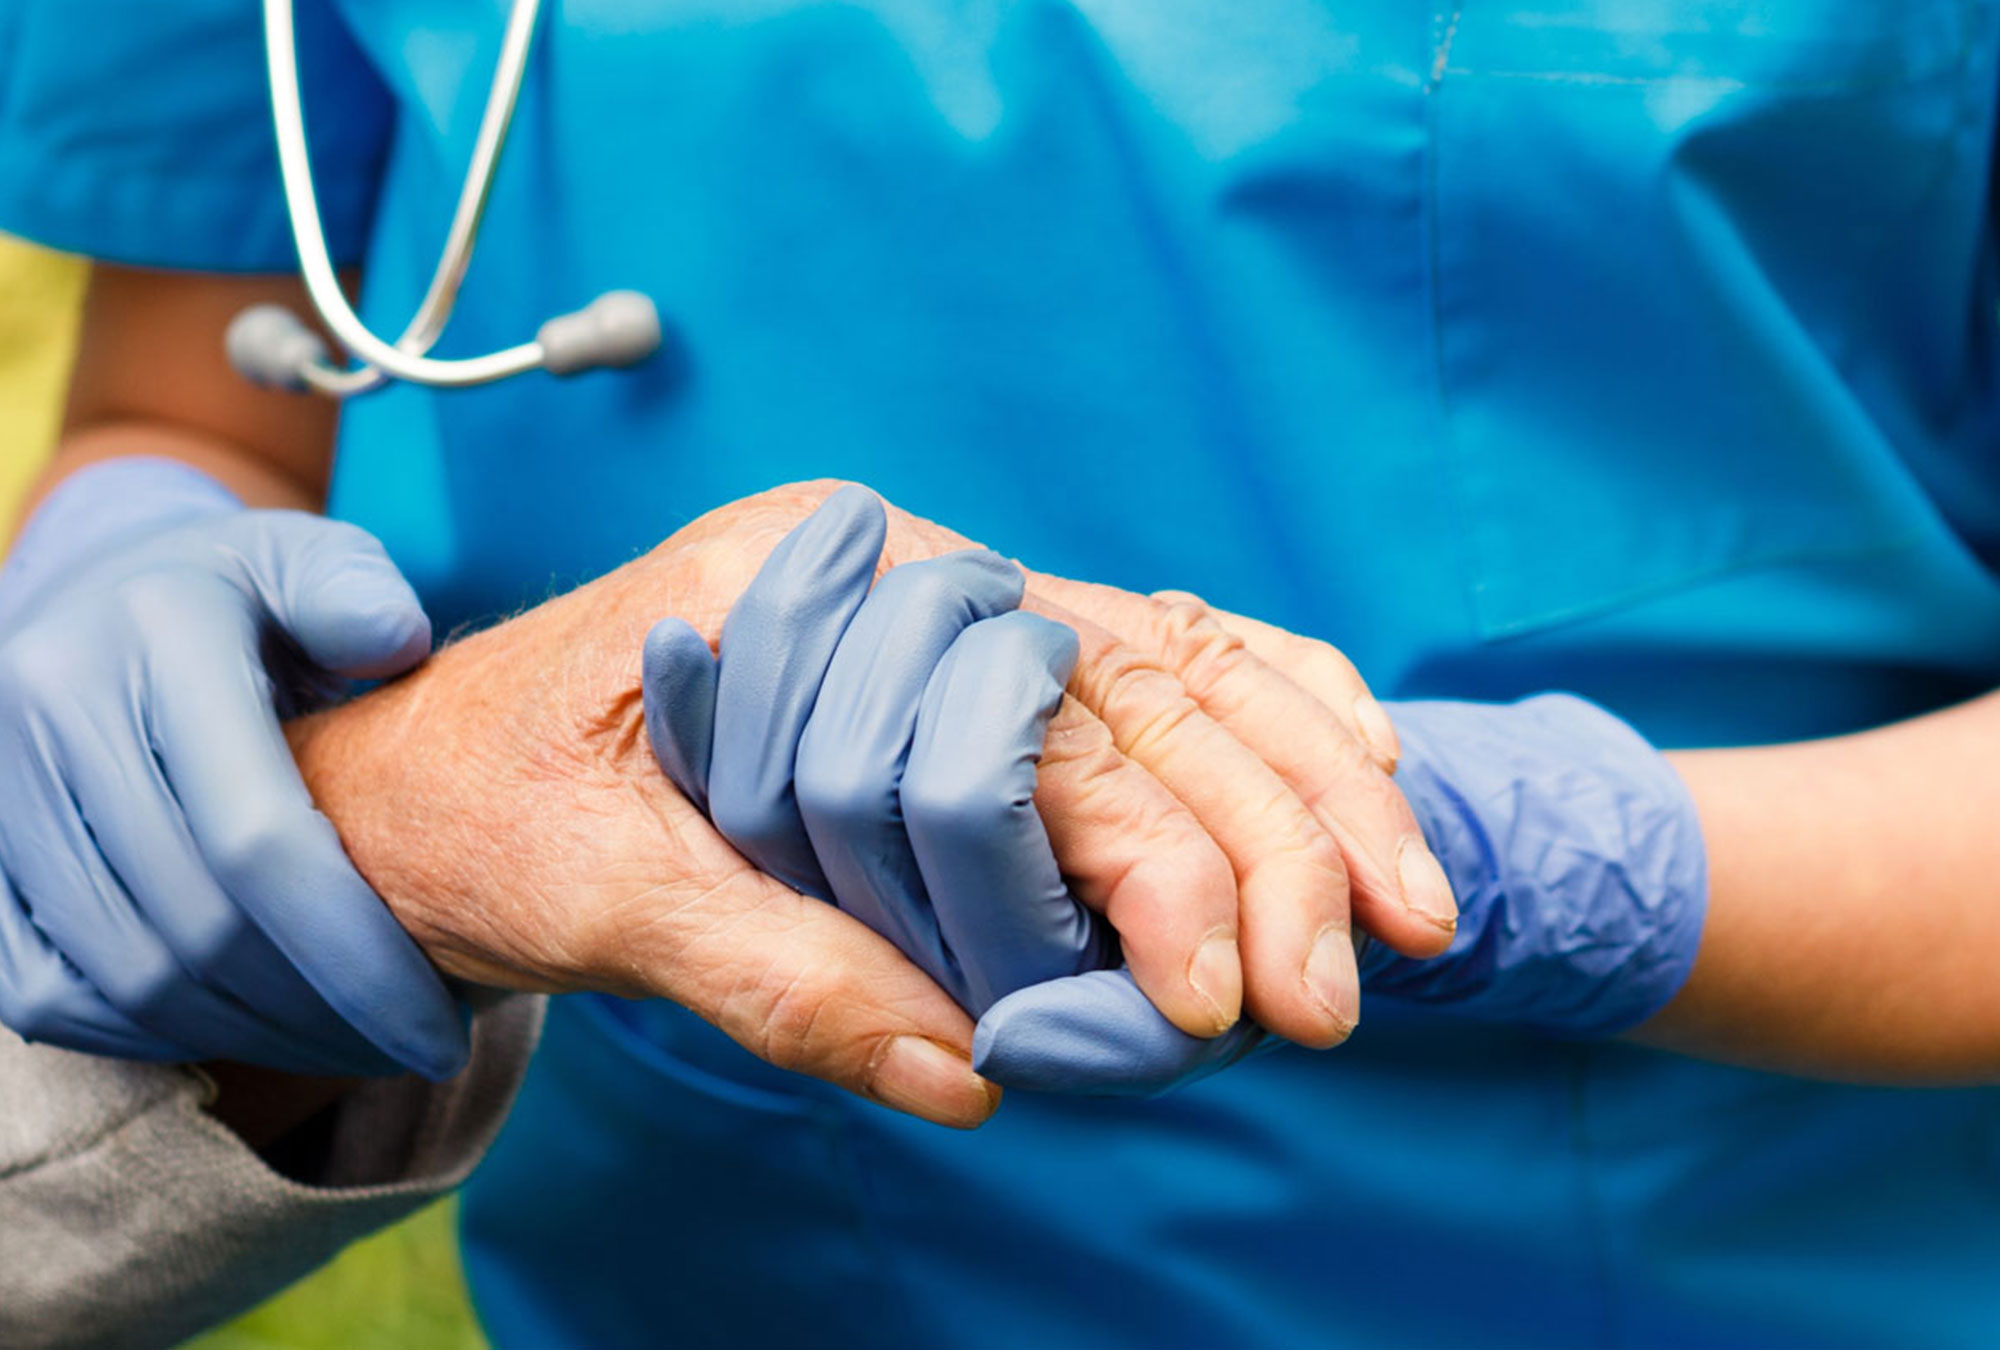 Doctor's gloved hands holding patient's hand